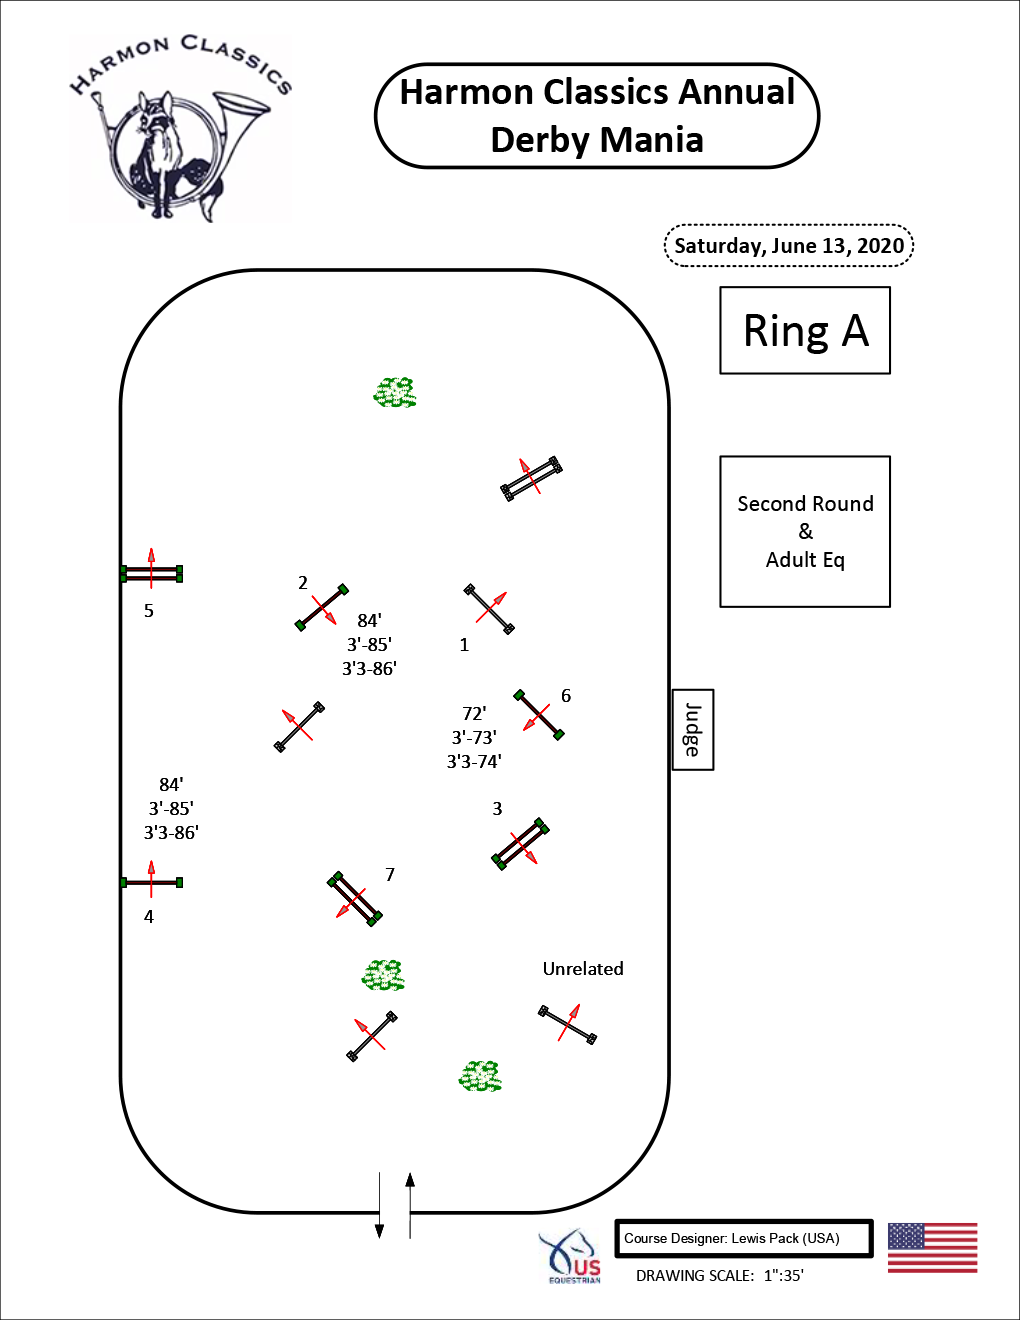 Ring-A-Saturday6-13-Second-Round-and-Adult-Equitation-Harmon-Classics-Derby-Mania